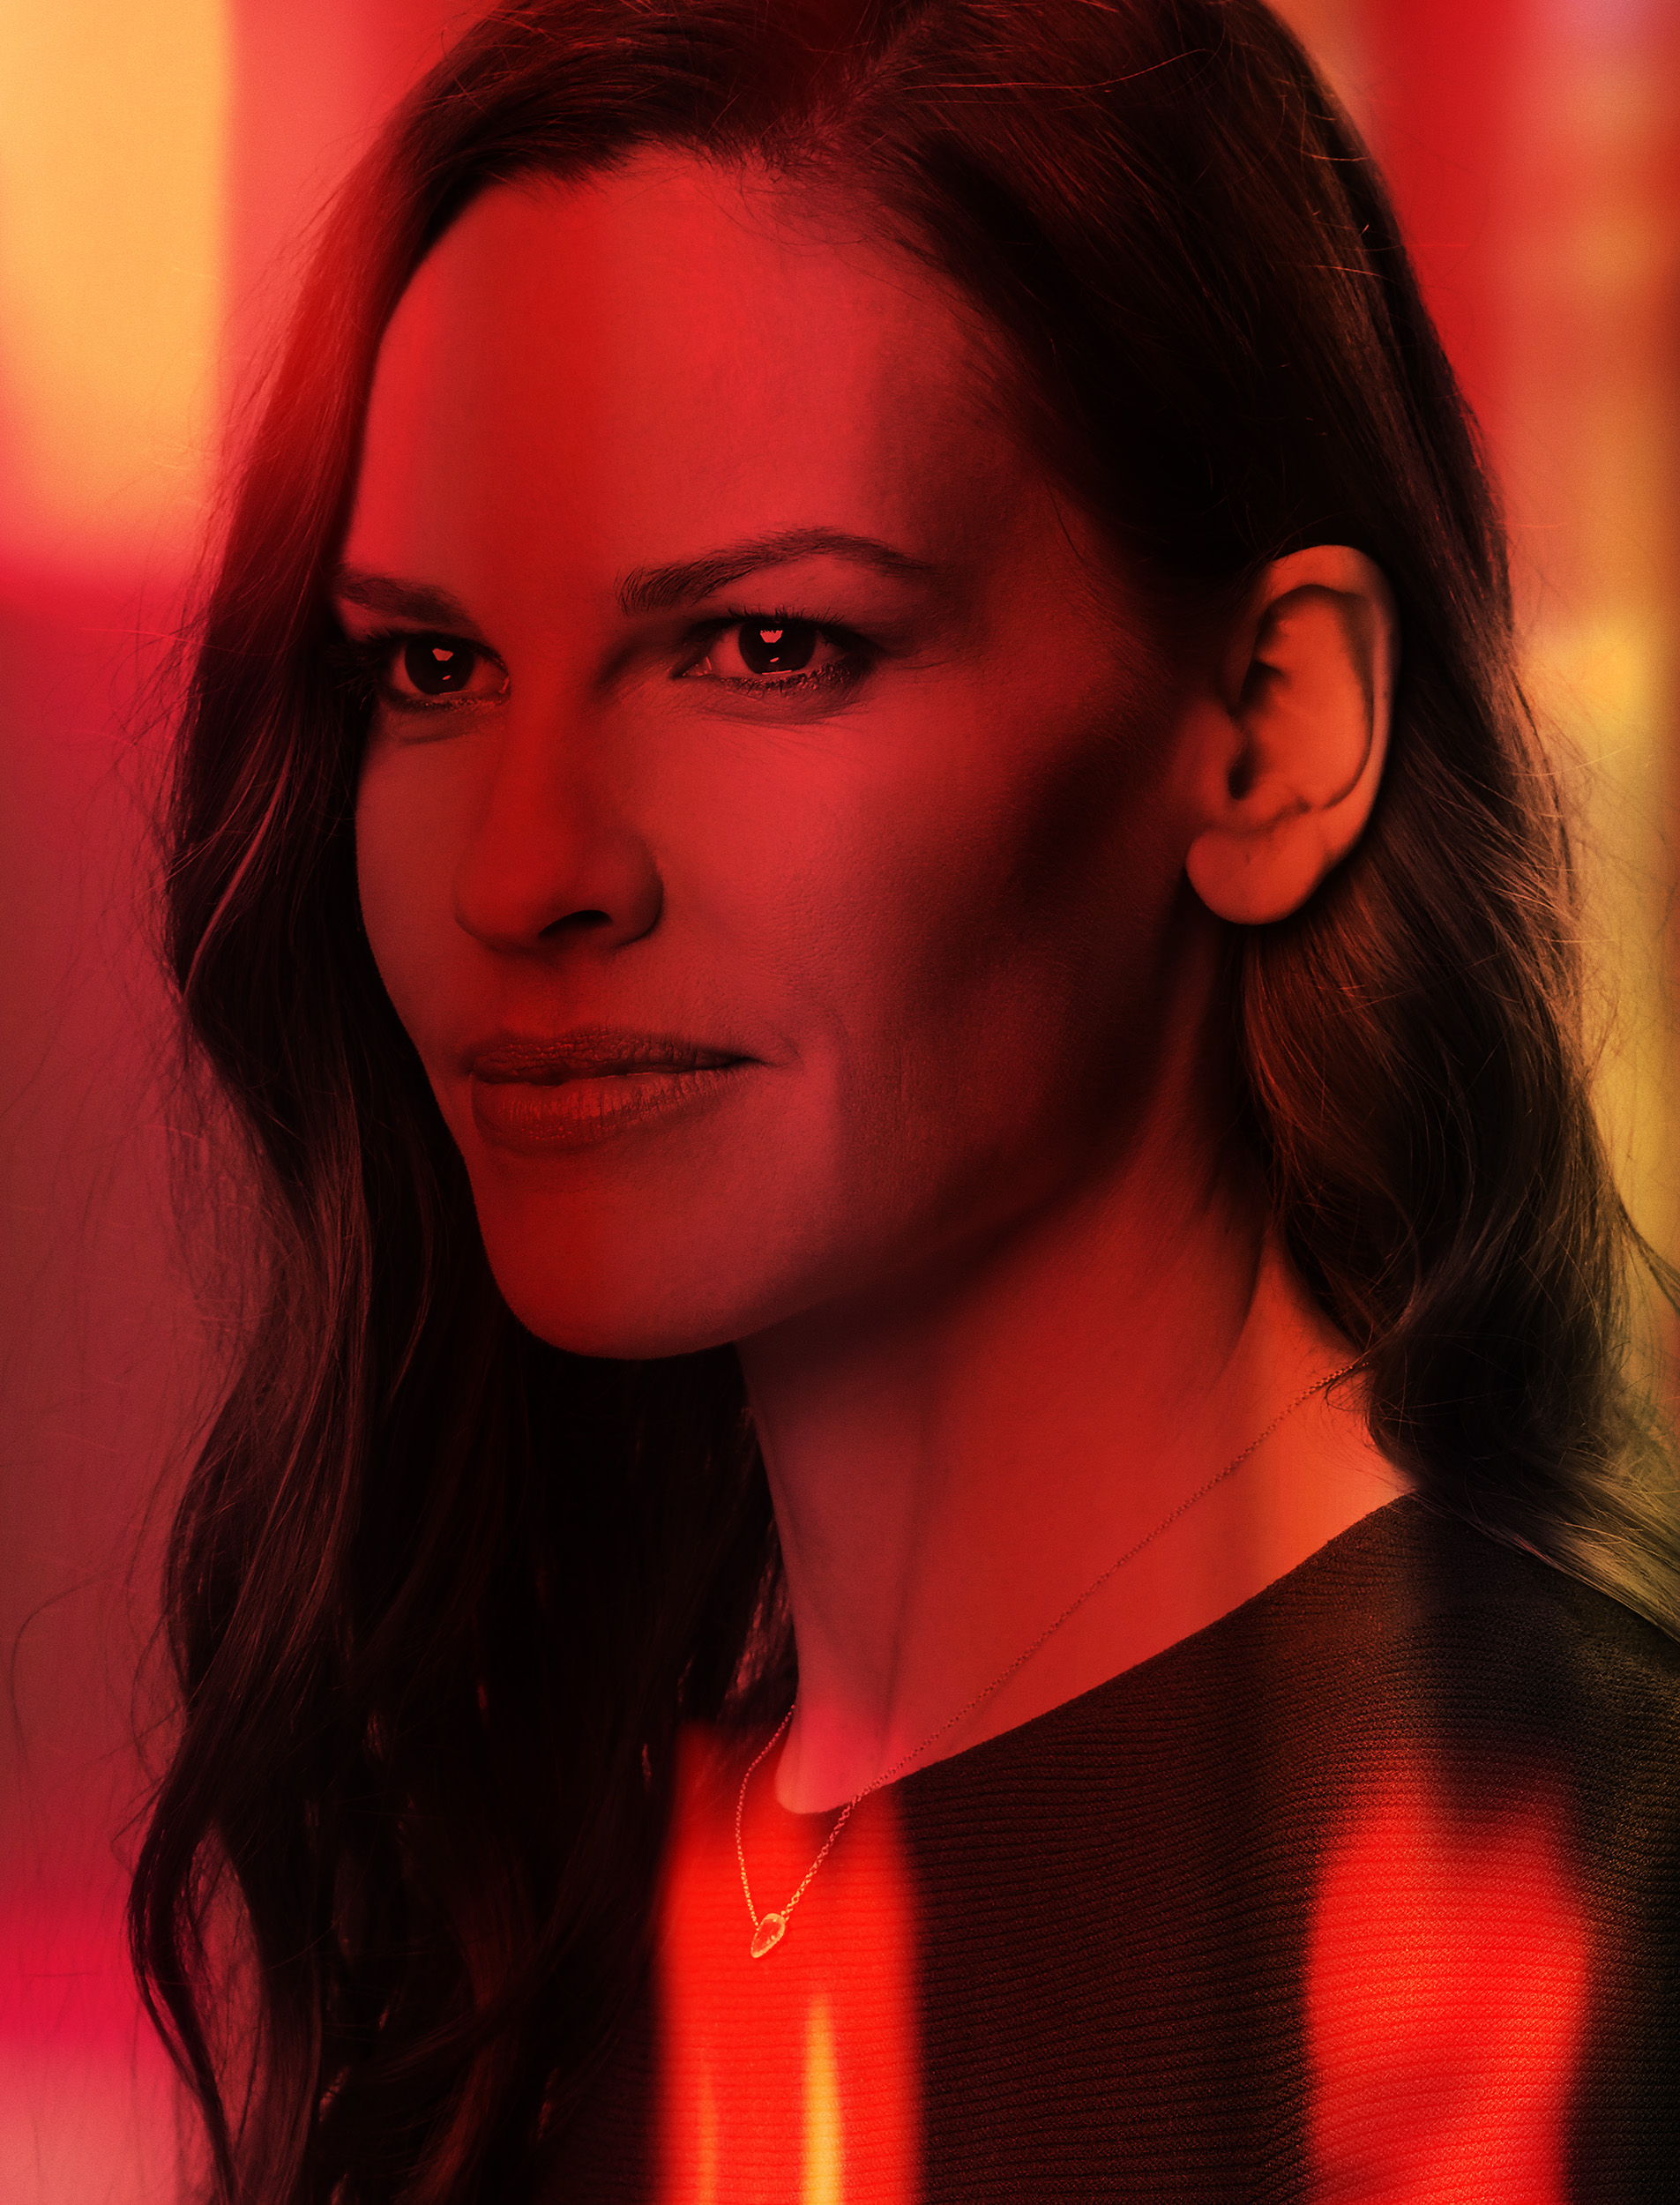 Hilary-Swank-by-Robert-Ascroft